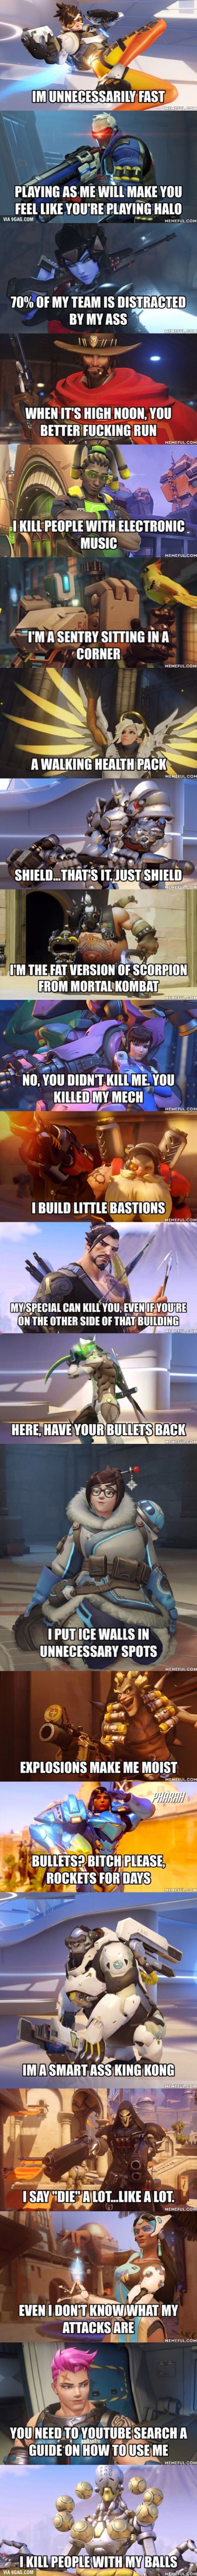 Overwatch In A Nutshell>>>so very true